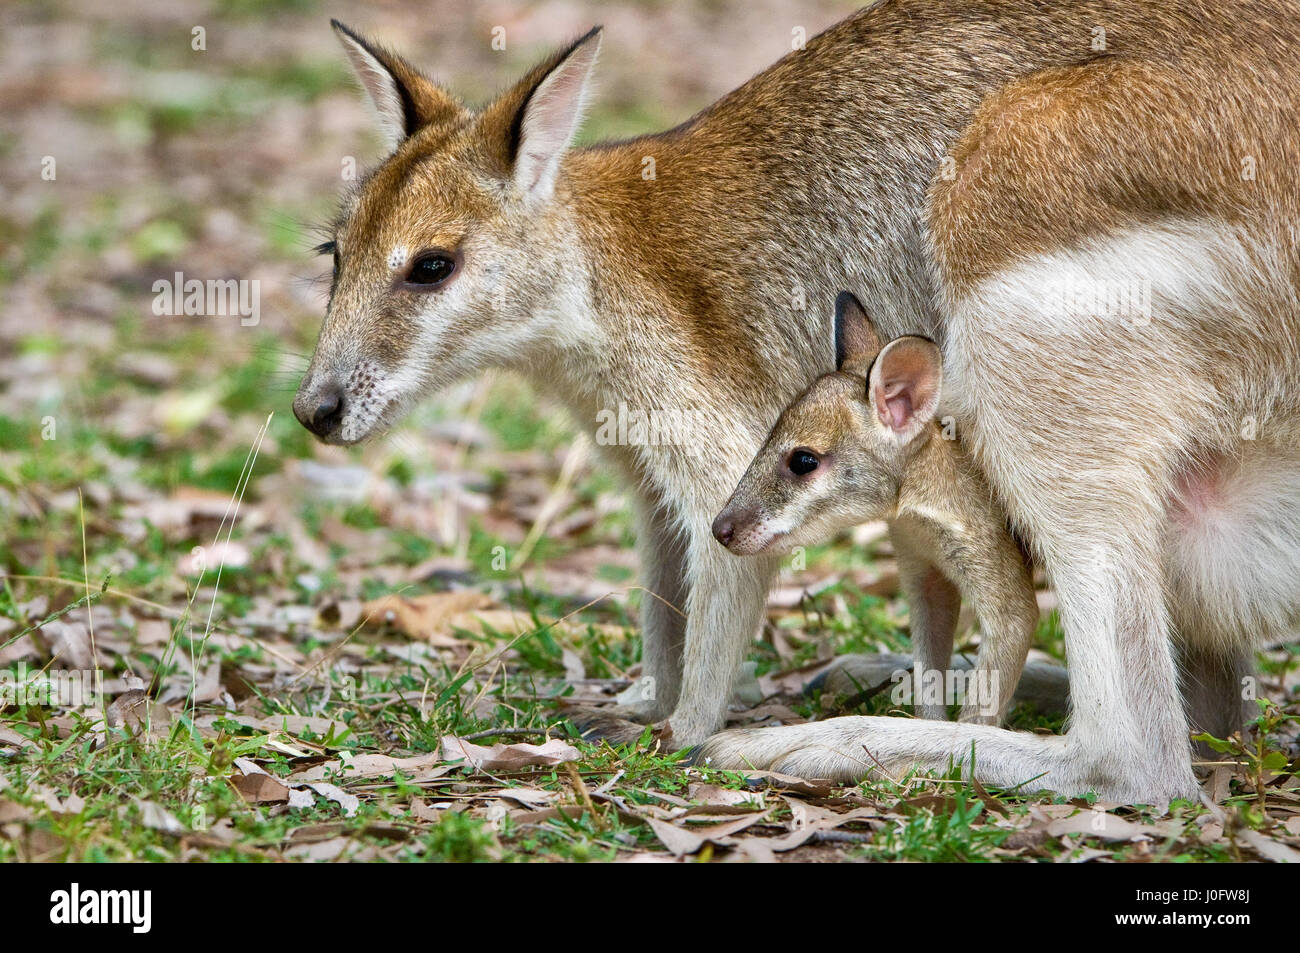 Agile Wallaby with joey looking of the pouch. - Stock Image